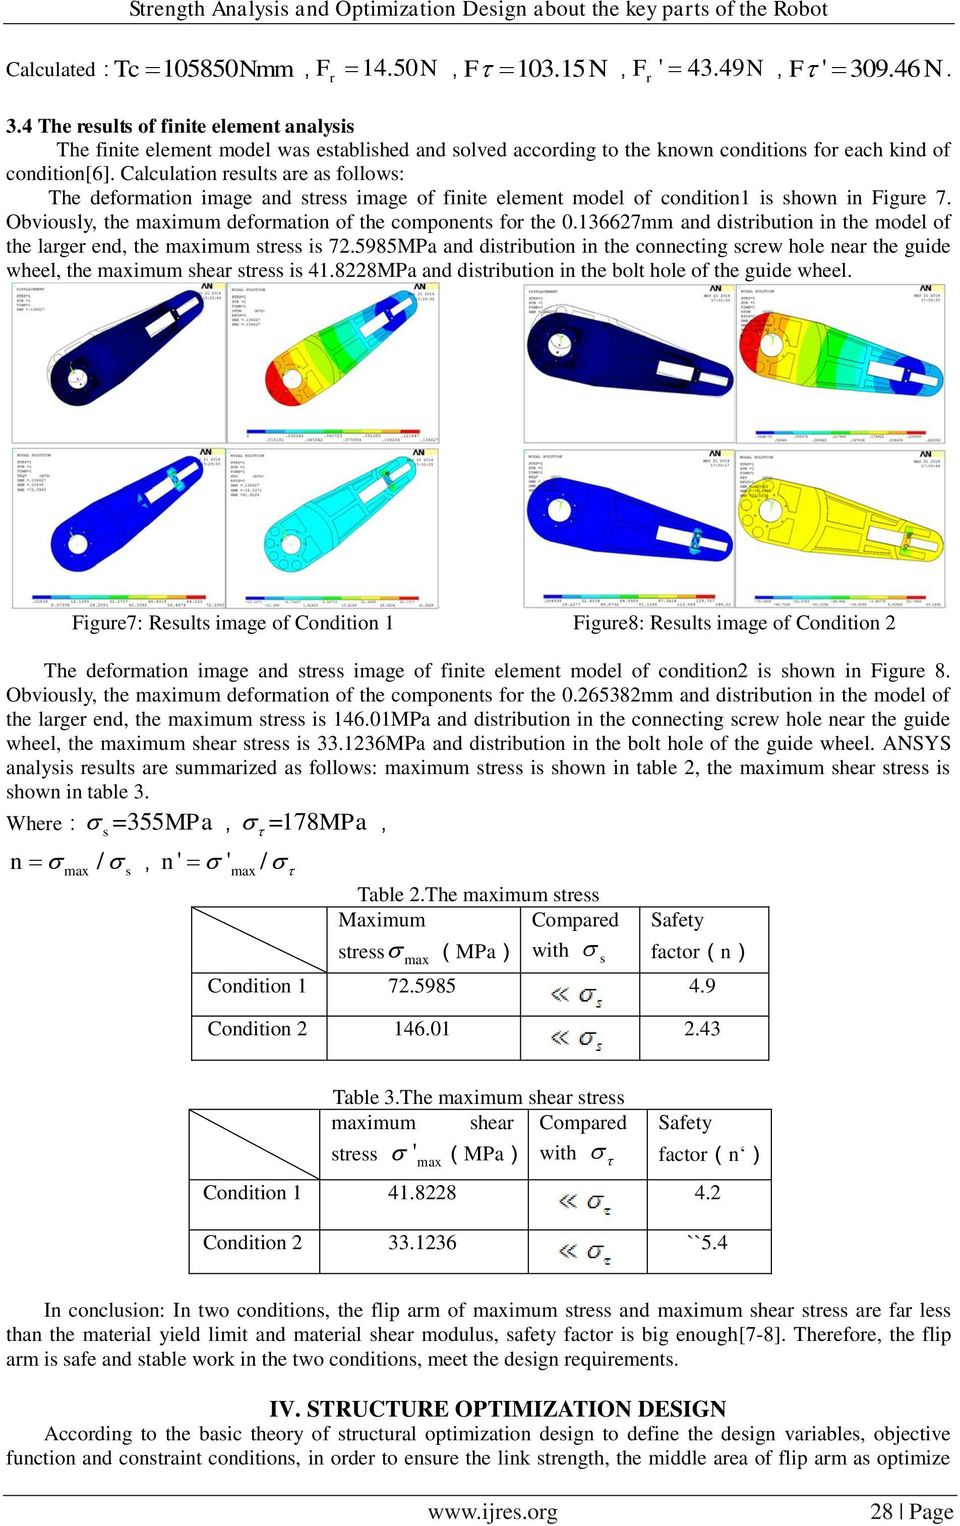 Calculation esults ae as follows: The defomation image and stess image of finite element model of condition1 is shown in Figue 7. Obviously, the imum defomation of the components fo the 0.